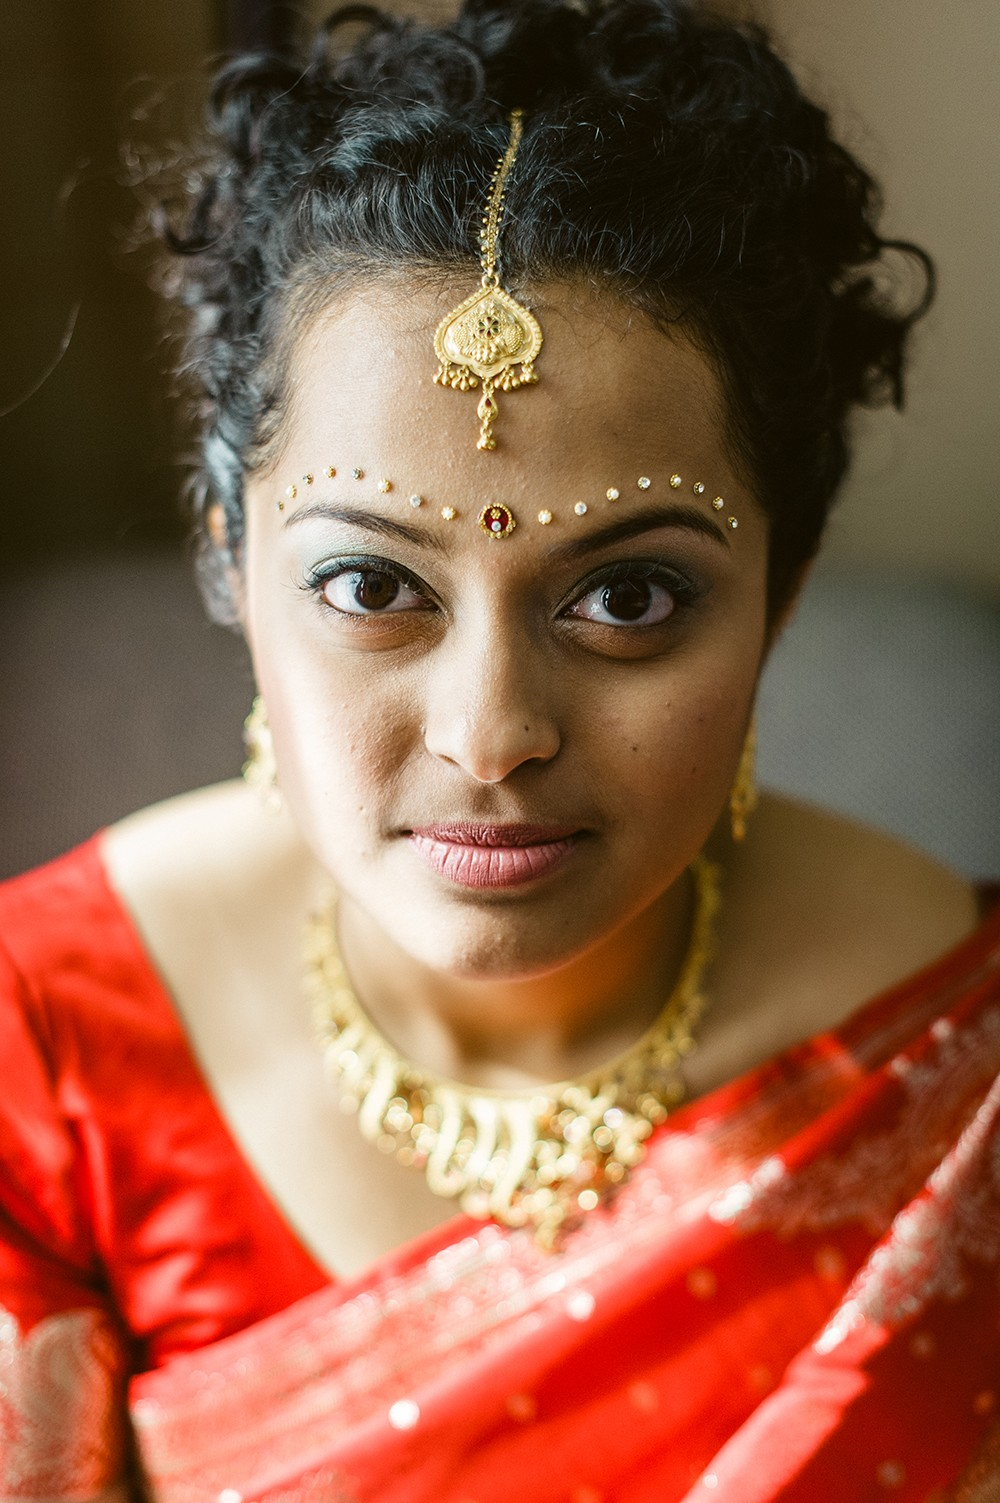 big indian lesbian personals Our free dating site is for you if you want to find fat singles to get cozy with it will not cost you a penny and we have many potential overweight dates for you to choose from, free fat dating.